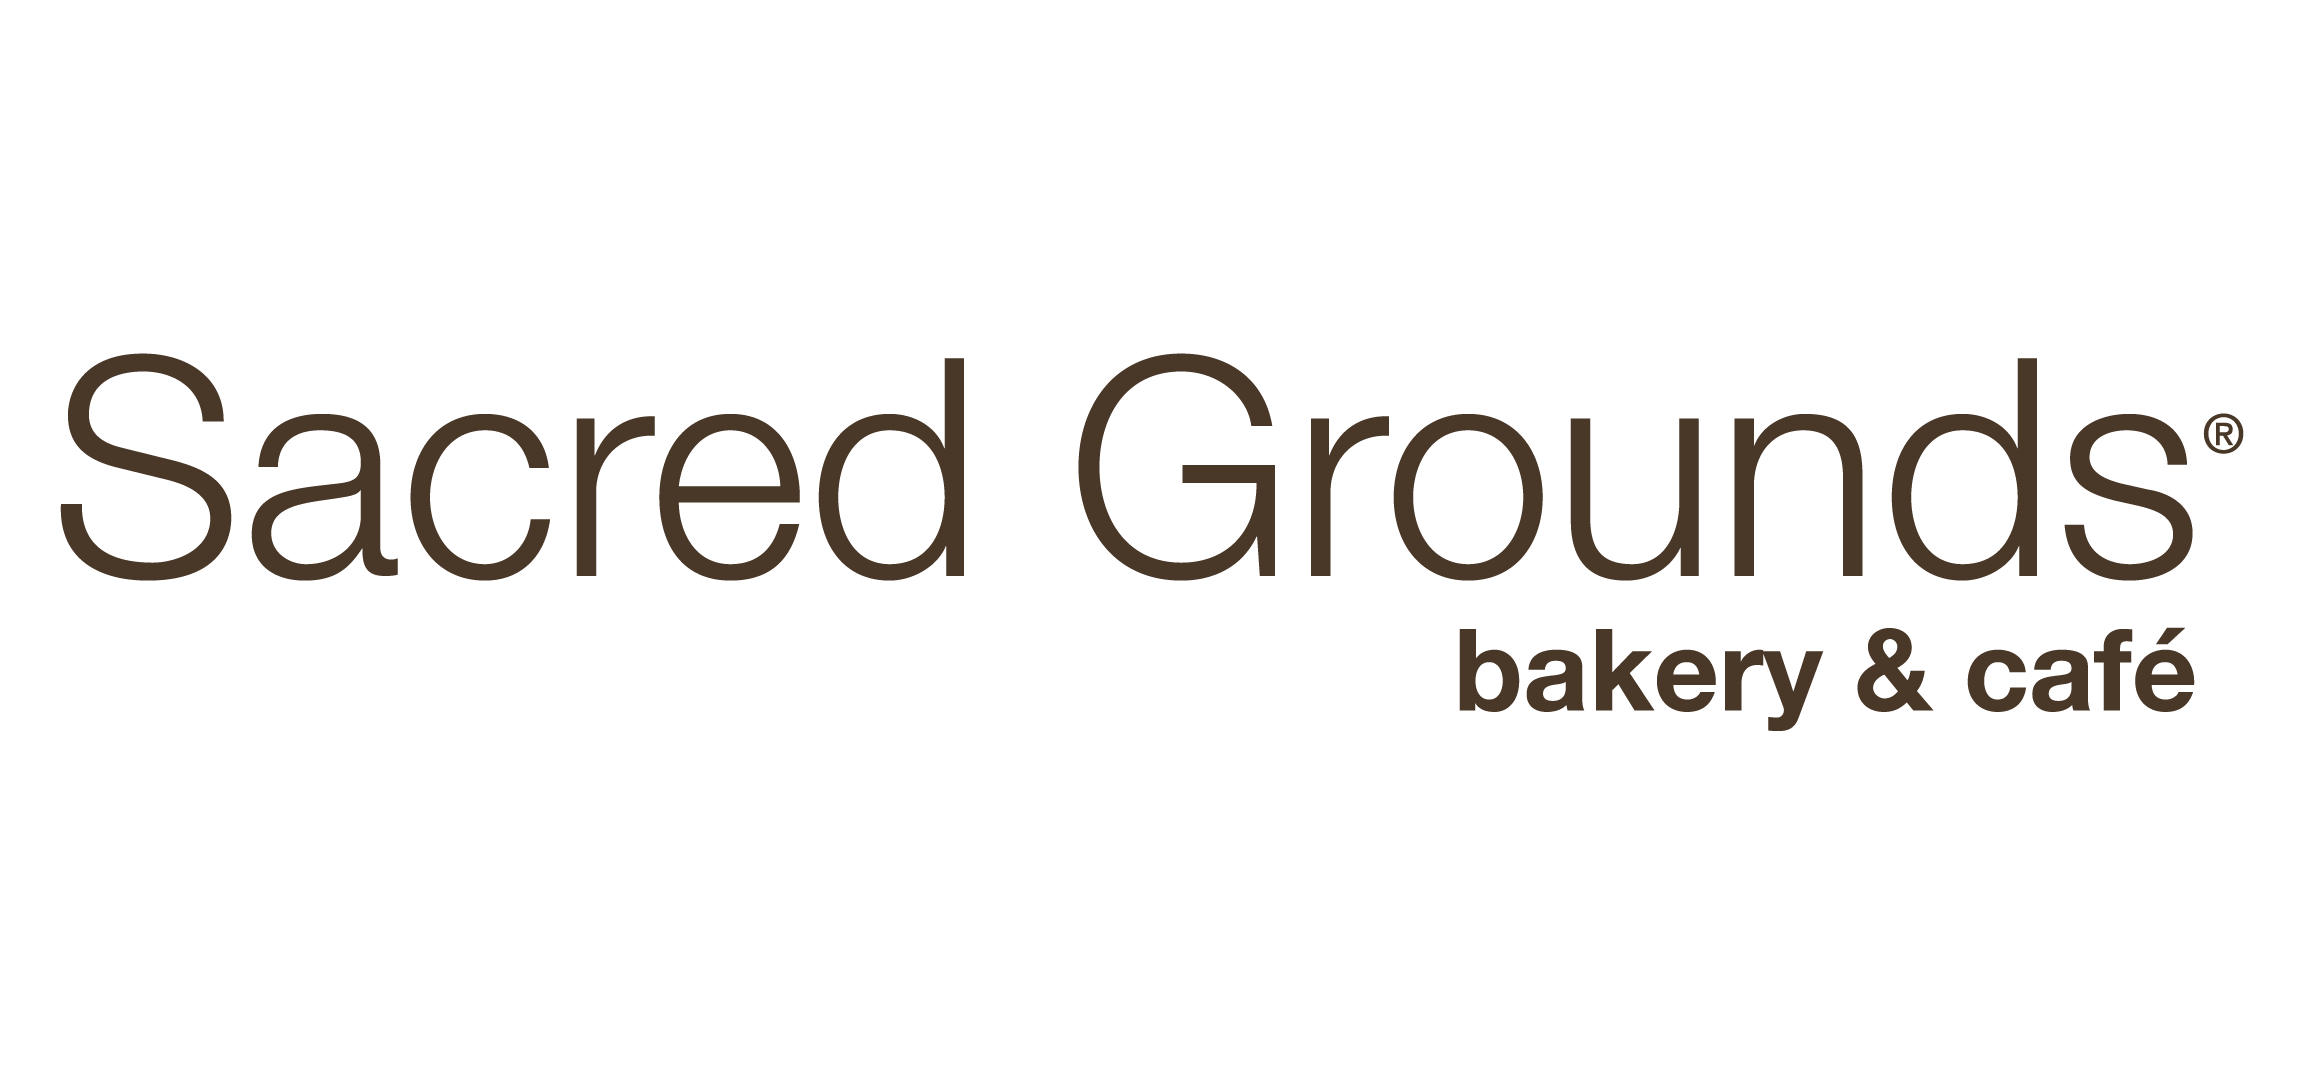 Sacred Grounds Bakery & Café Logo